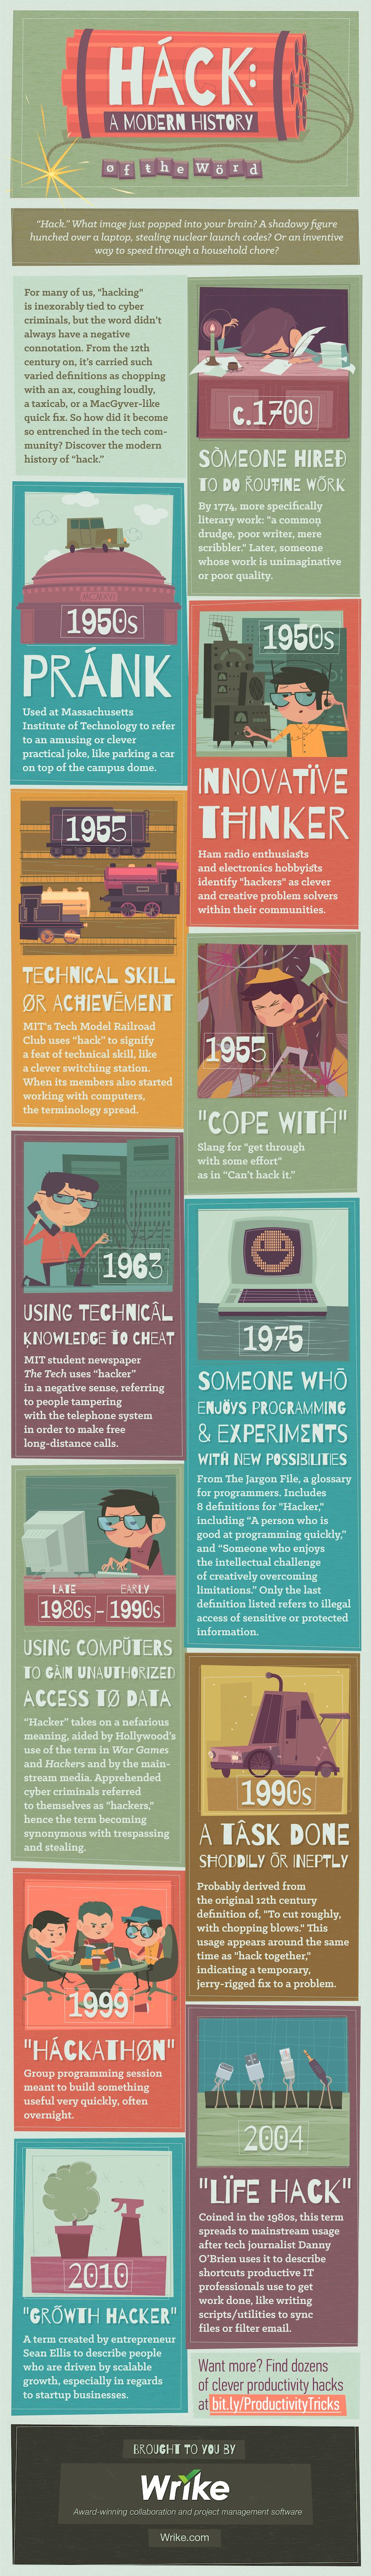 Hack A Modern History of the Word #infographic